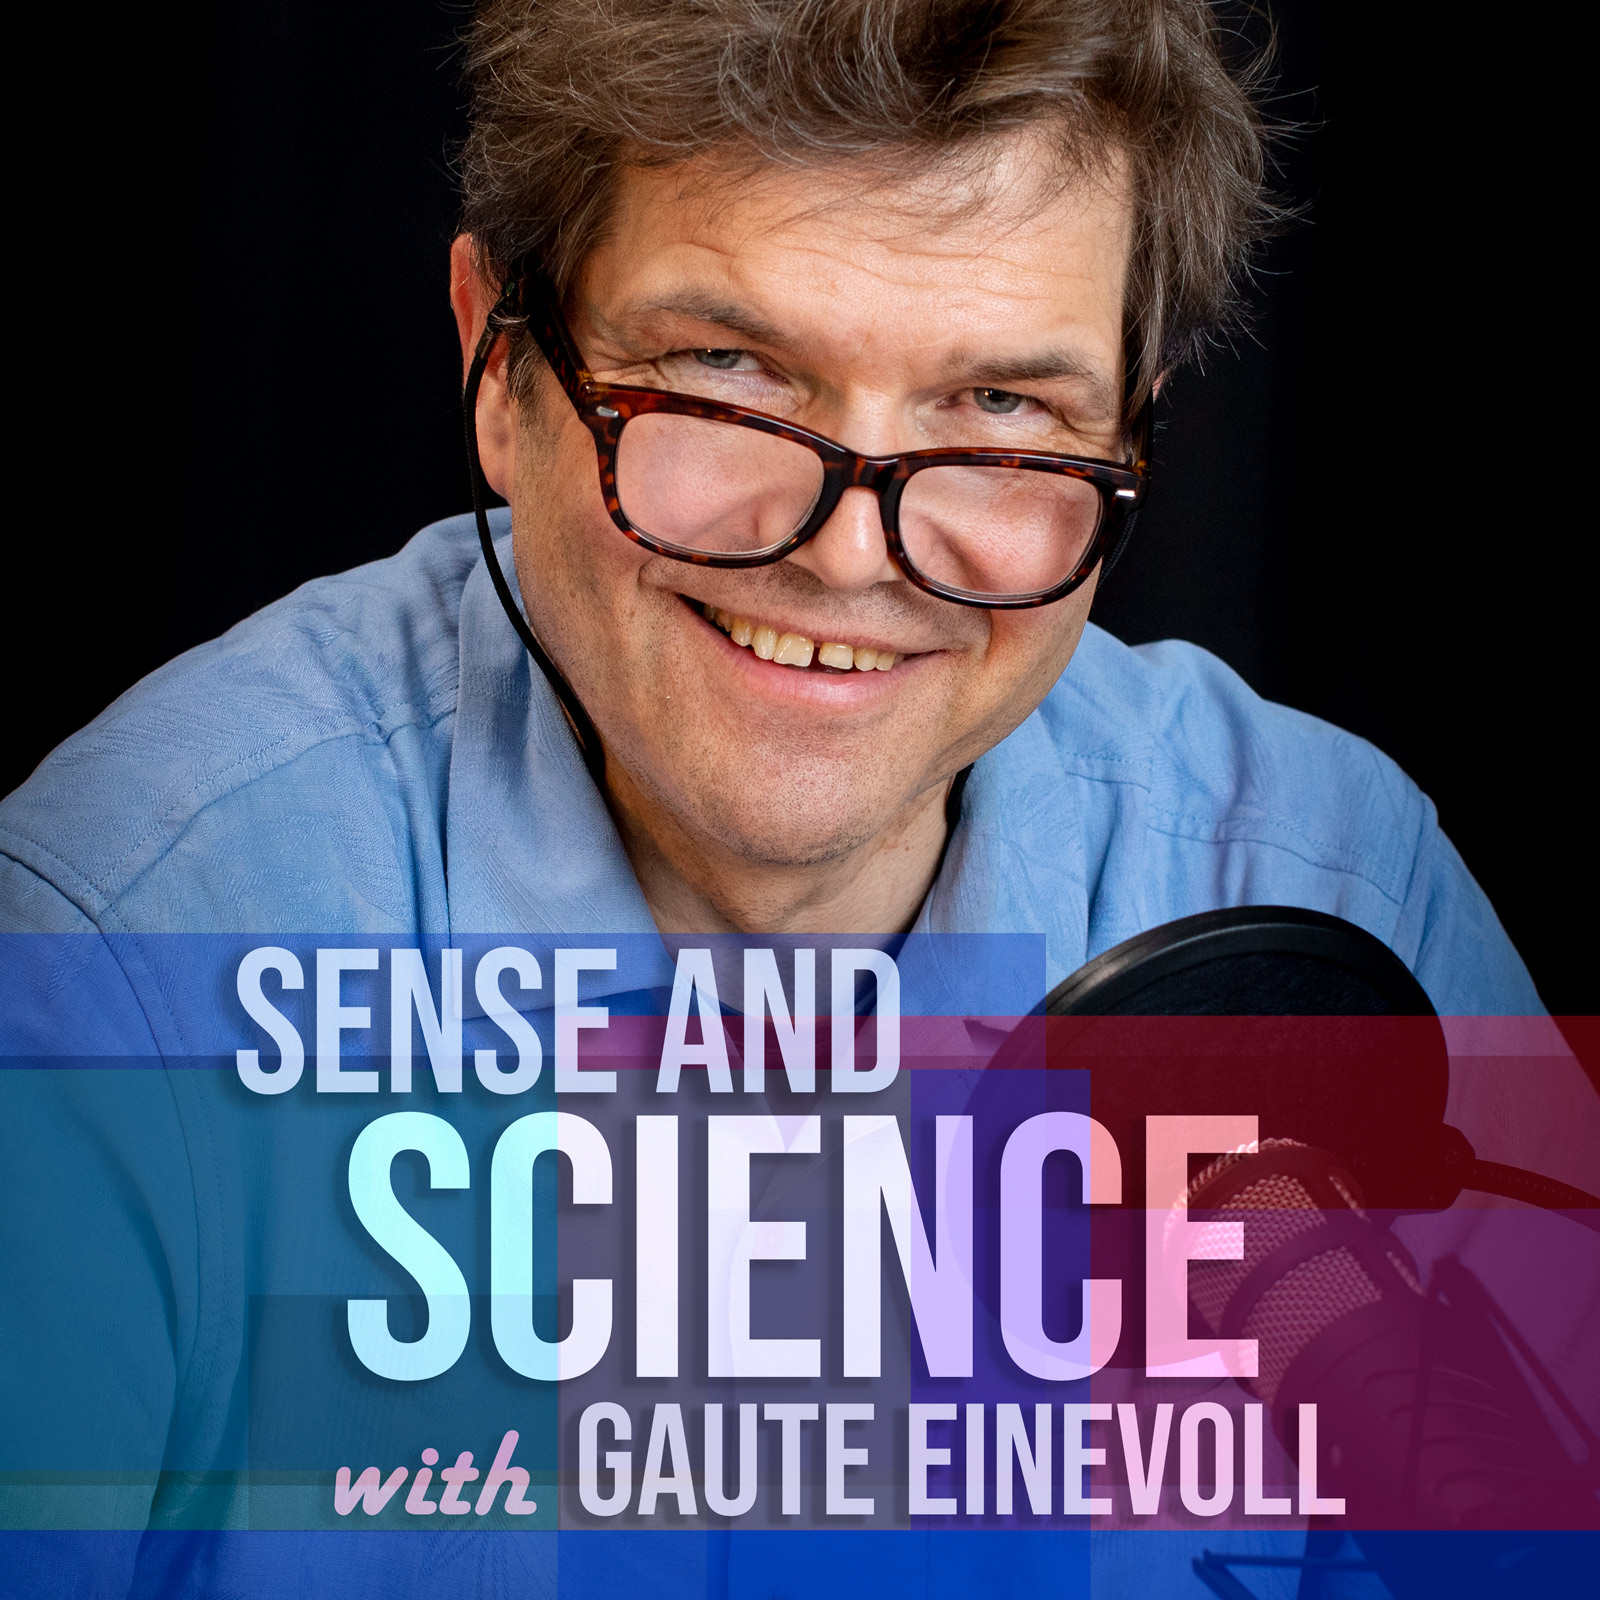 Sense and Science with Gaute Einevoll